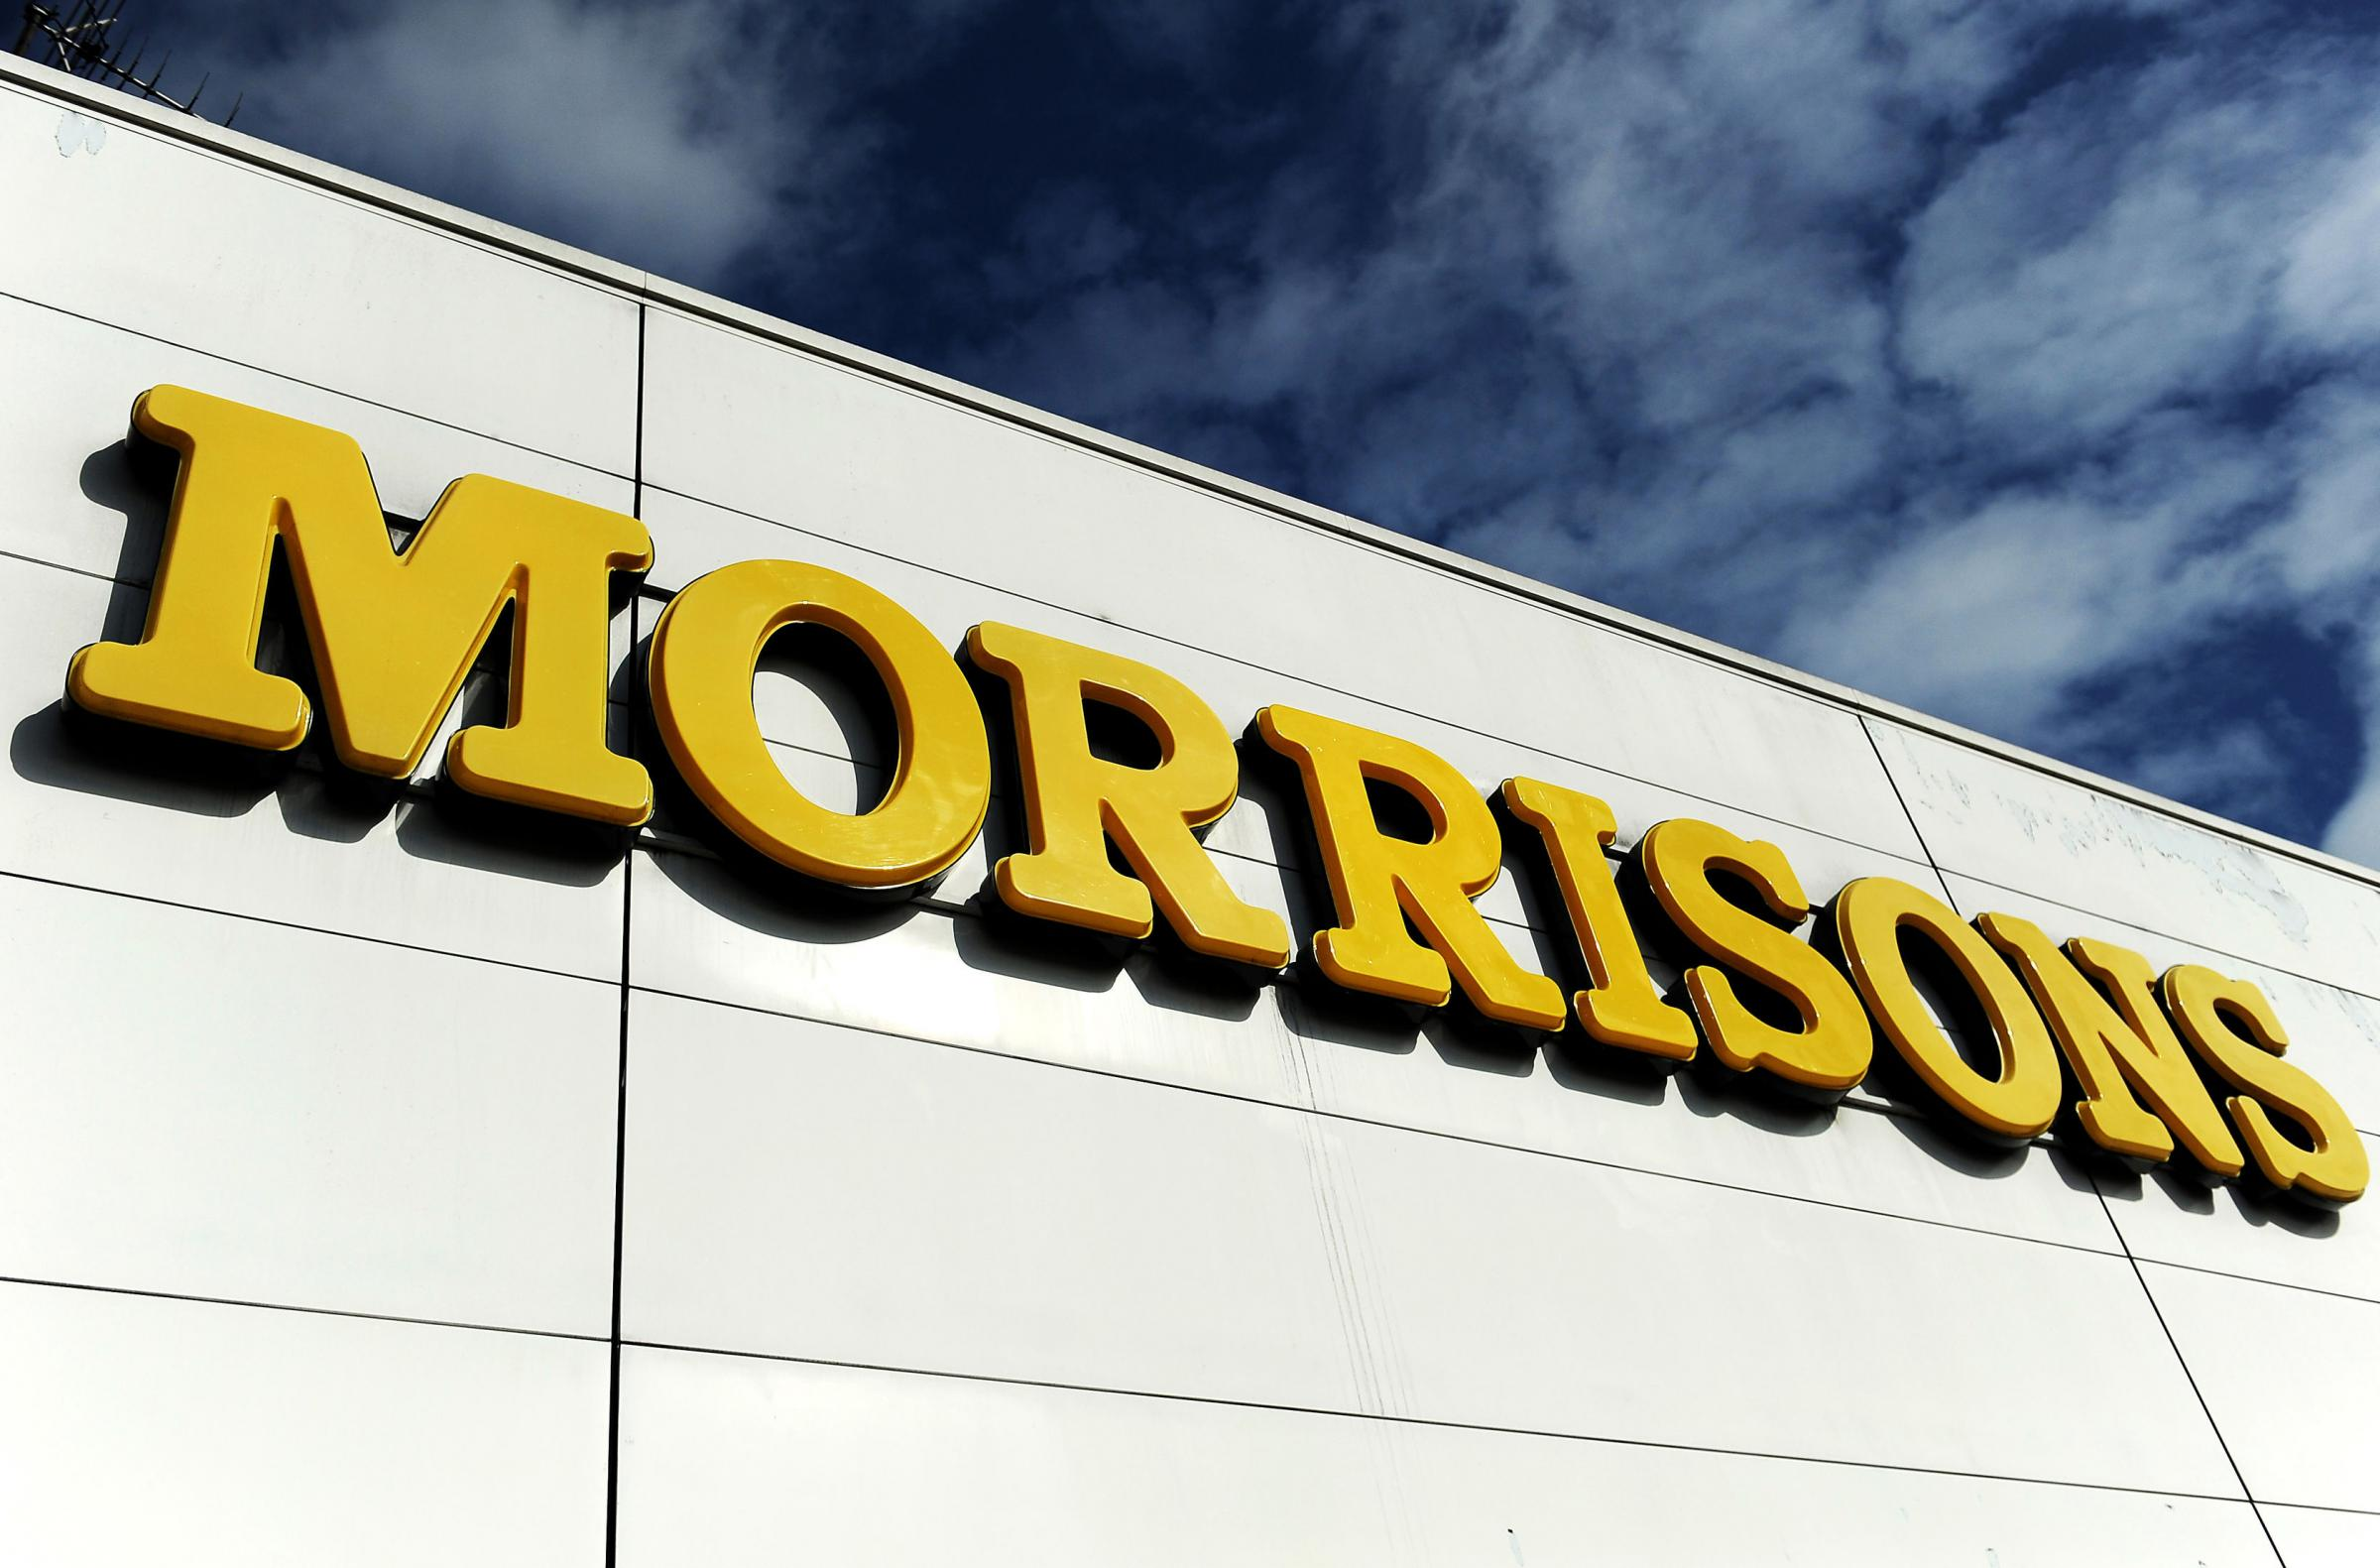 Shares dive as Morrisons' growth slows